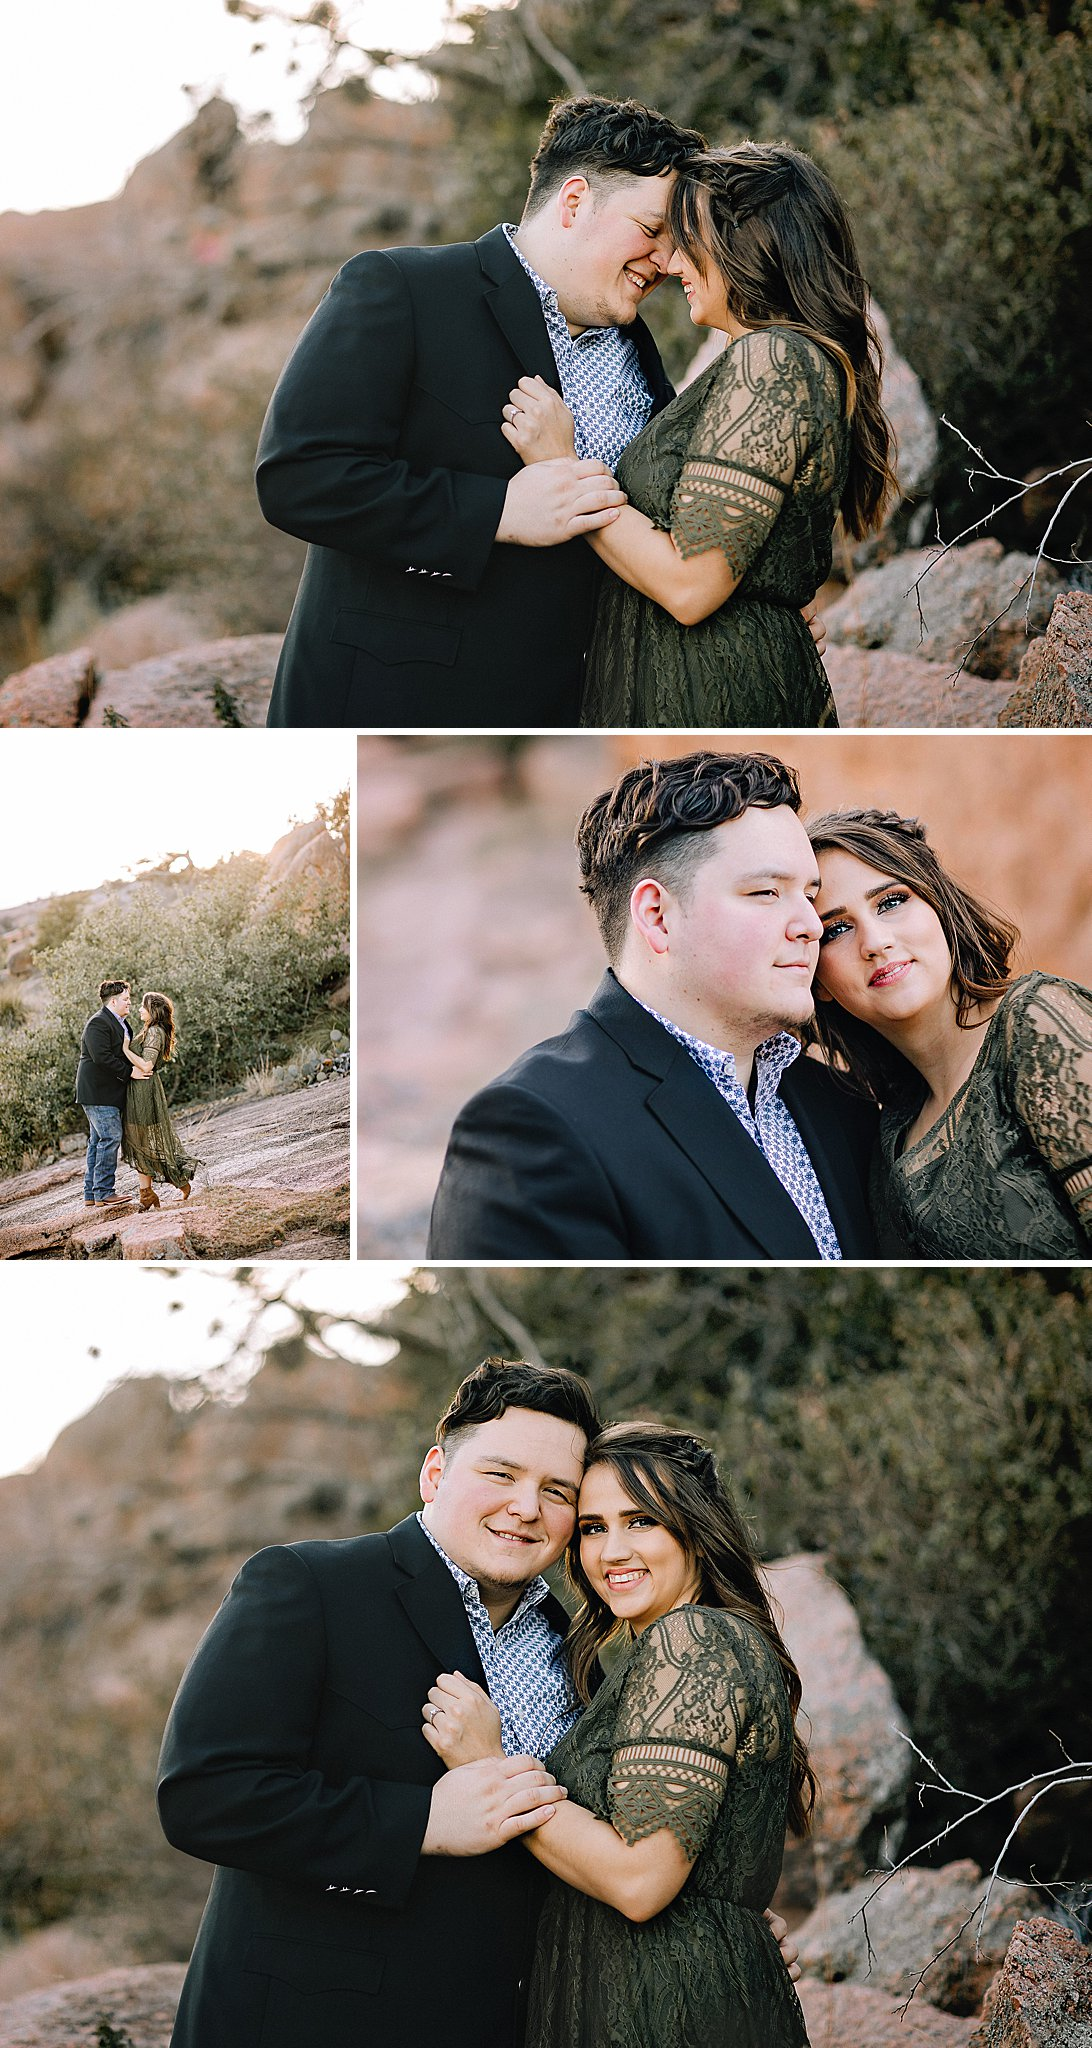 Carly-Barton-Photography-Fredericksburg-Texas-Engagement-Session-Enchanted-Rock-Photos_0009.jpg